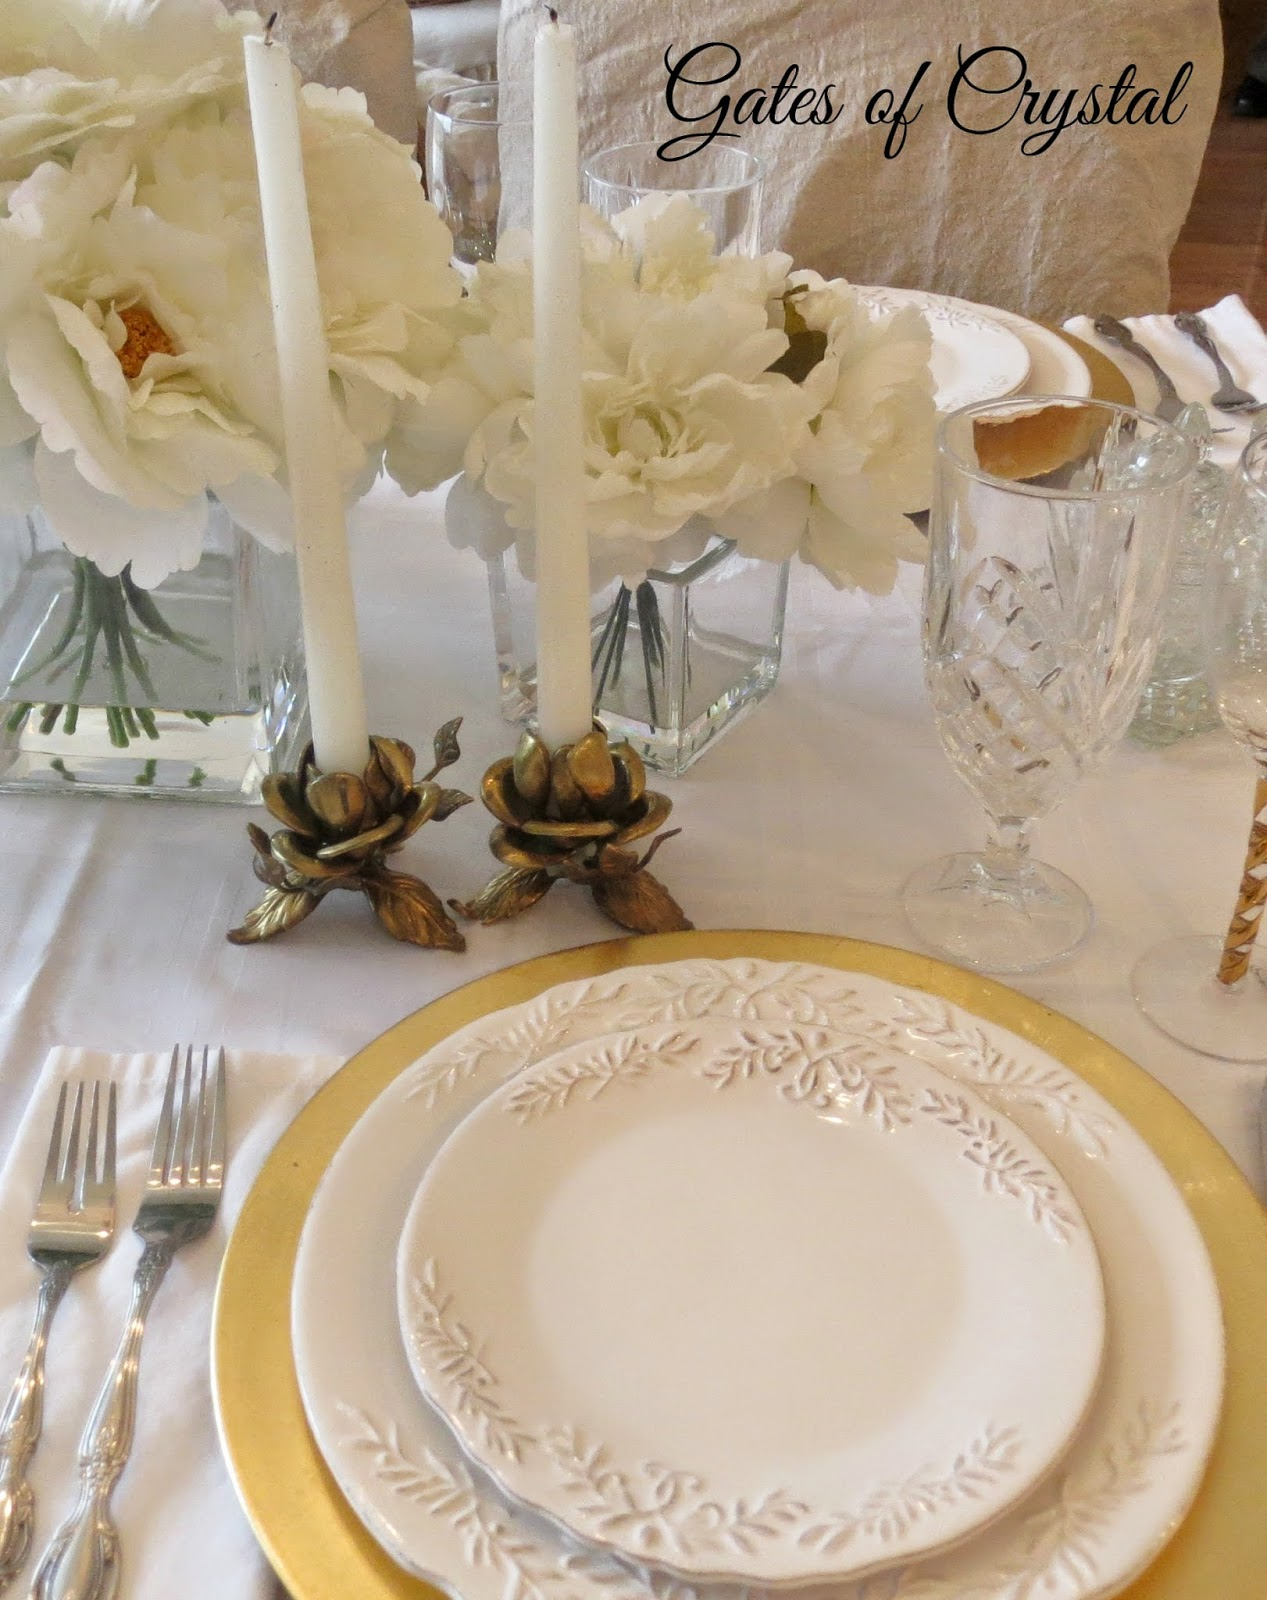 & Gates of Crystal: White and Gold Table Setting